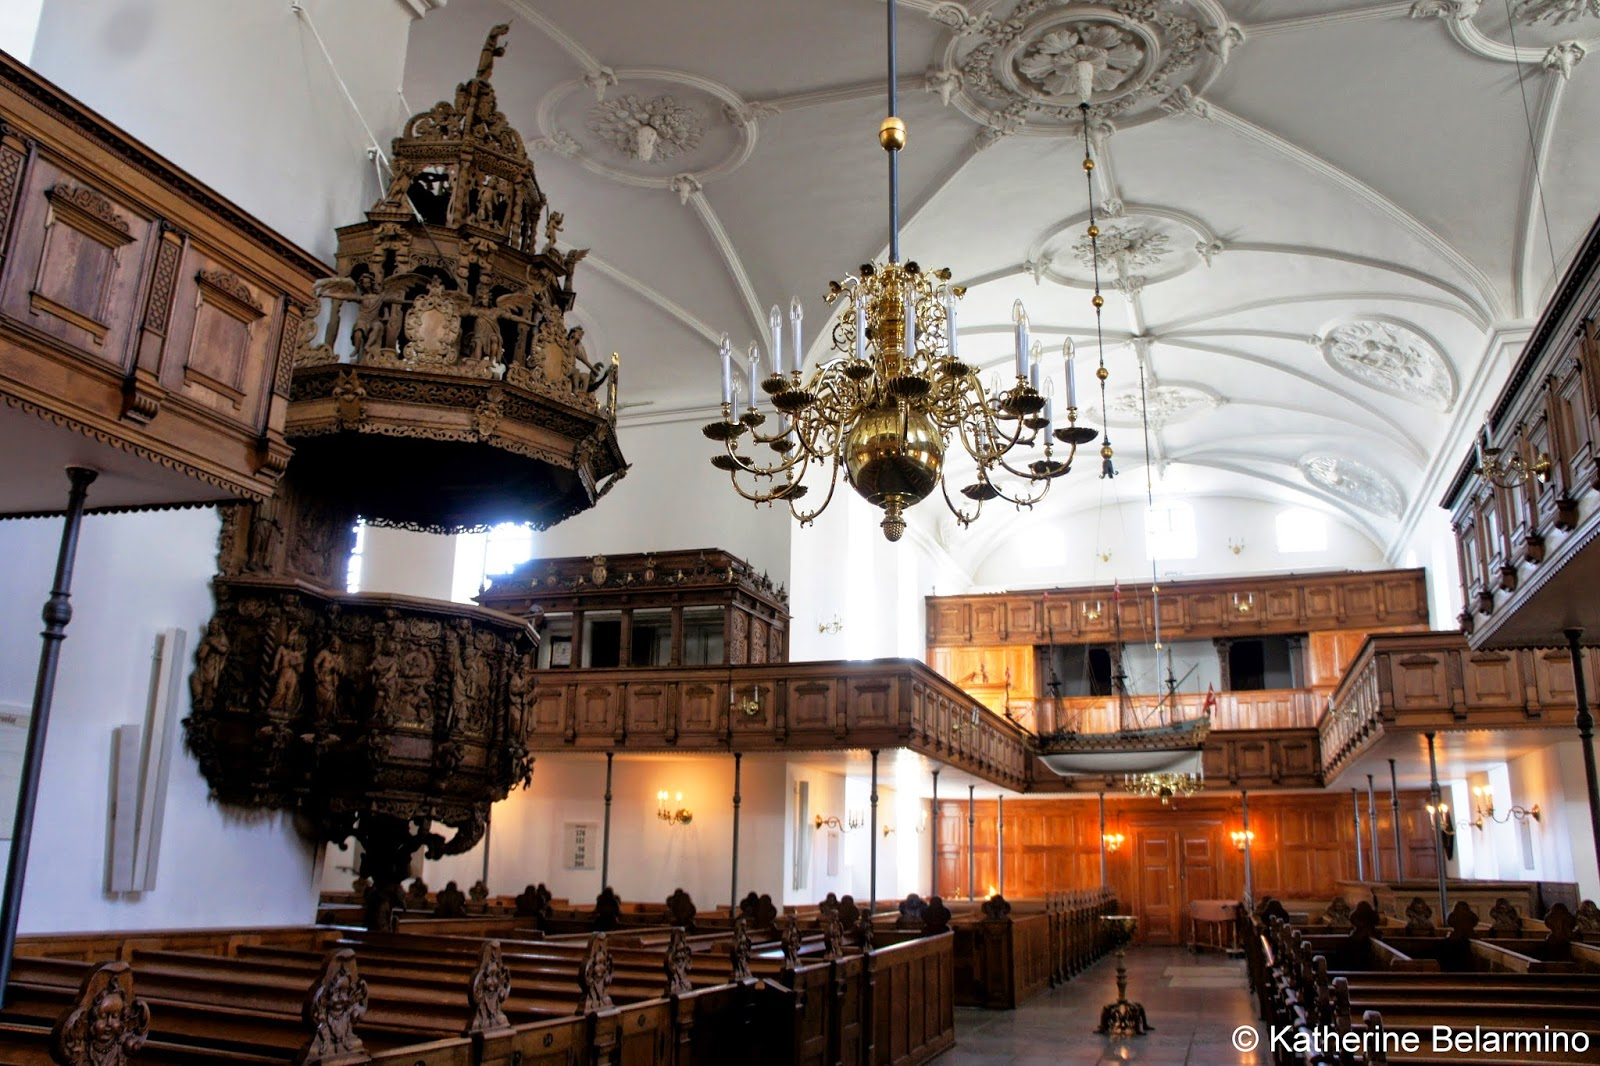 Copenhagen's Churches: Ships, Swans, Staircases, and Statues | Travel the World